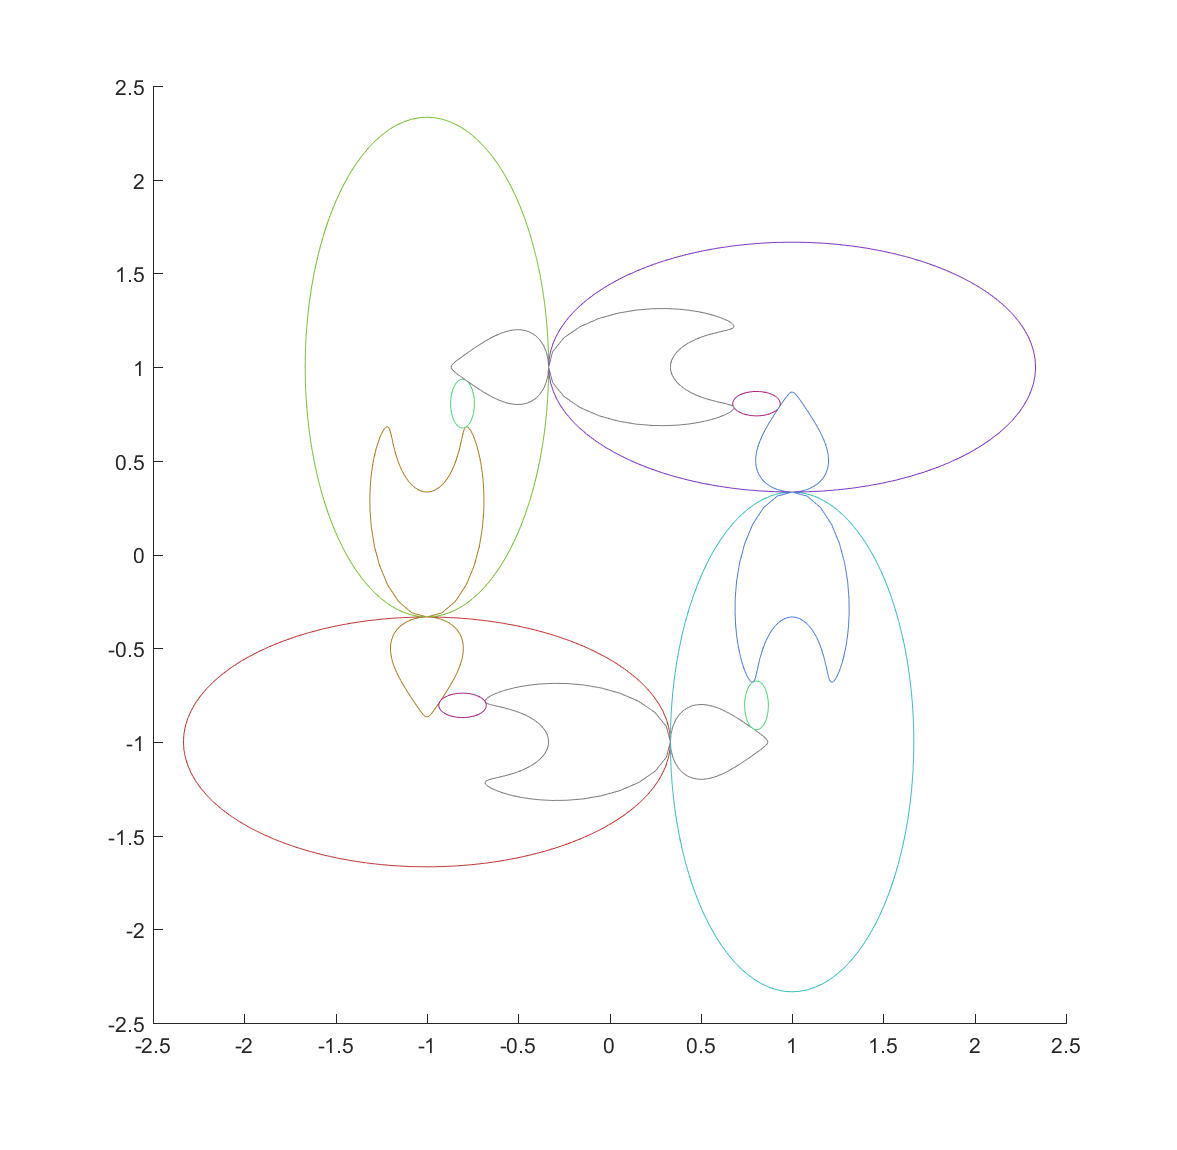 Mappings of the ellipses by their inversions: each of the four main ellipses map the other three to their interior but distort the shape of two of them.